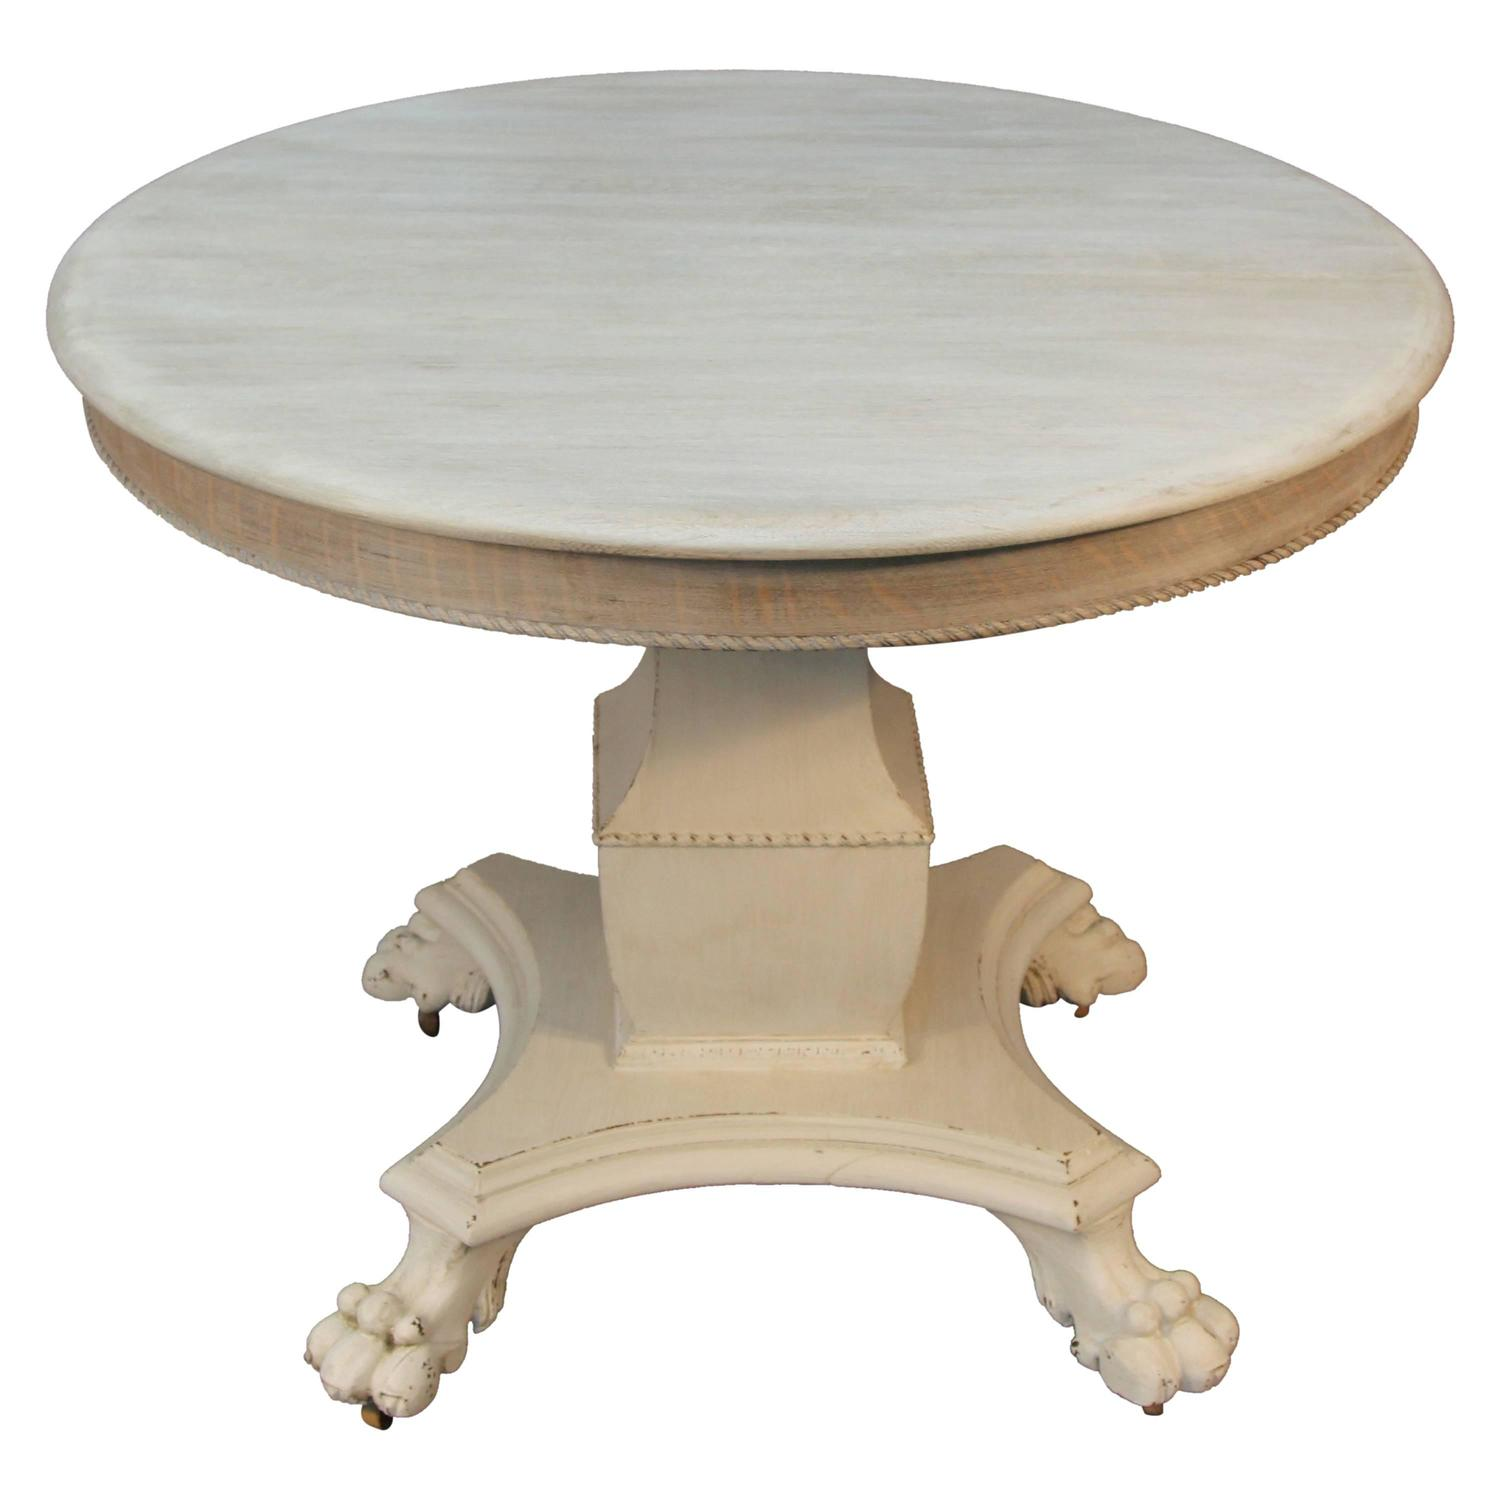 Round French Empire Style Dining Table At 1stdibs